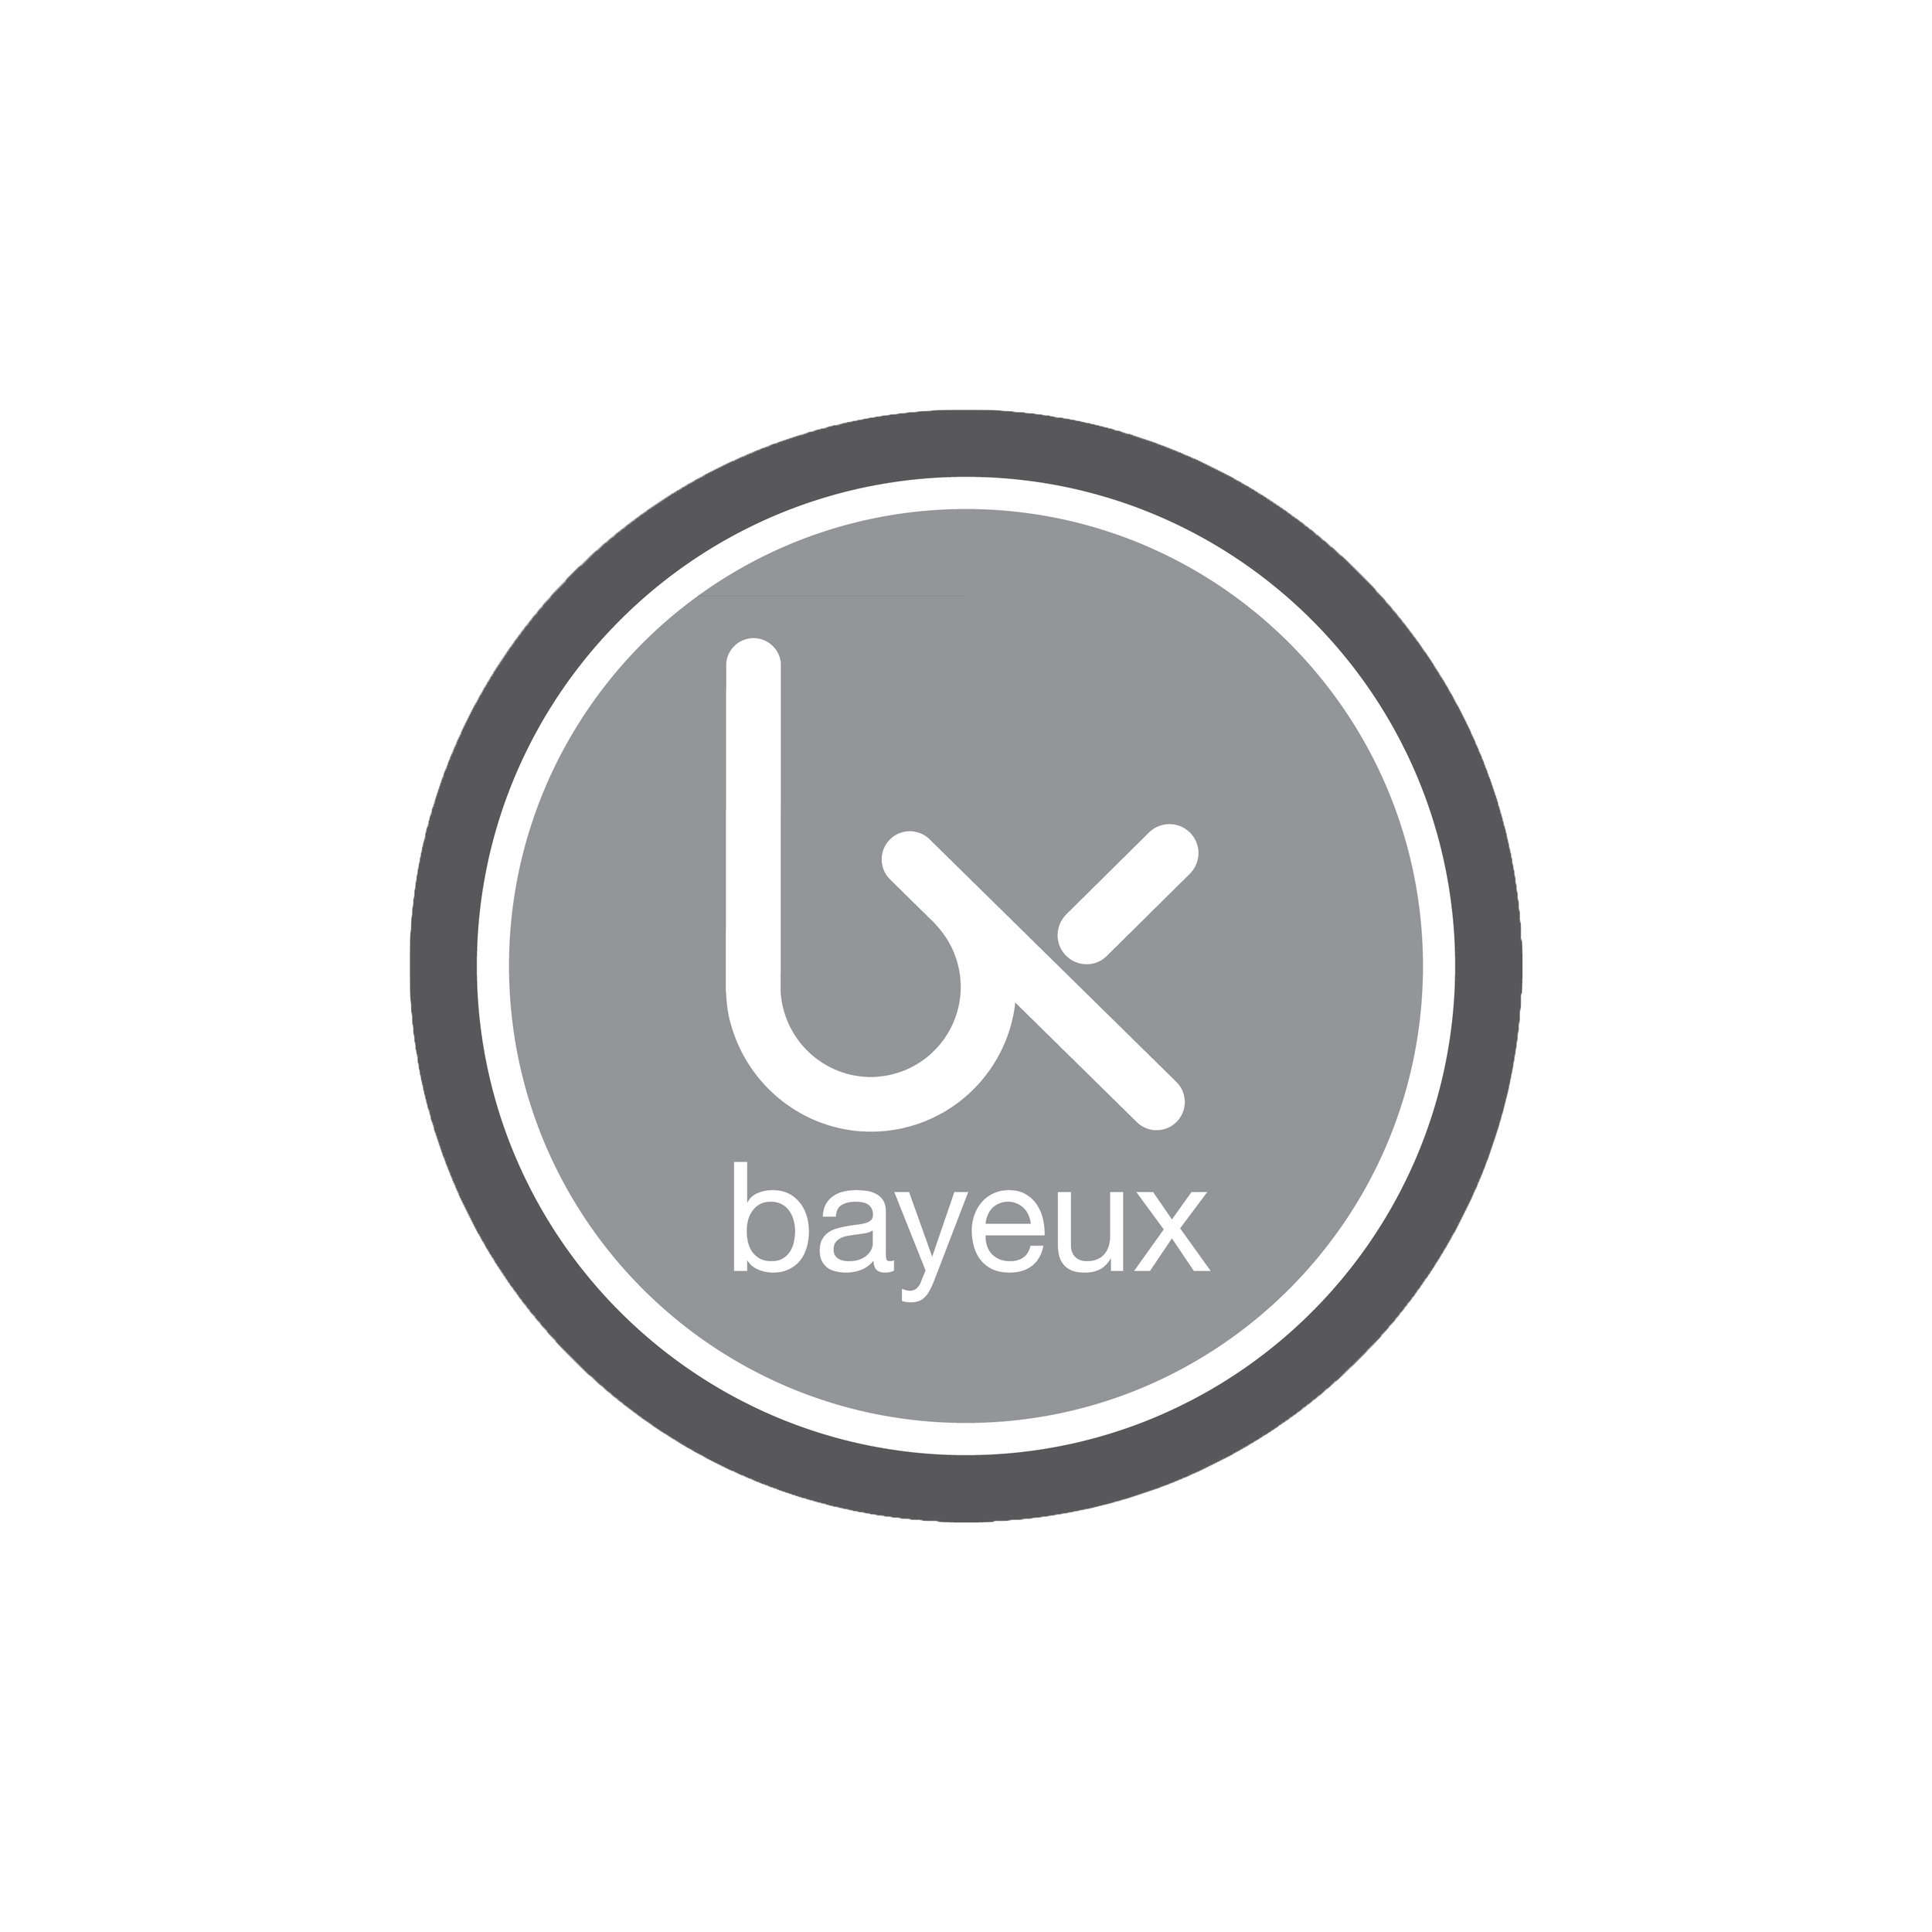 BAYEUX LOGO FINAL BIG(2).png